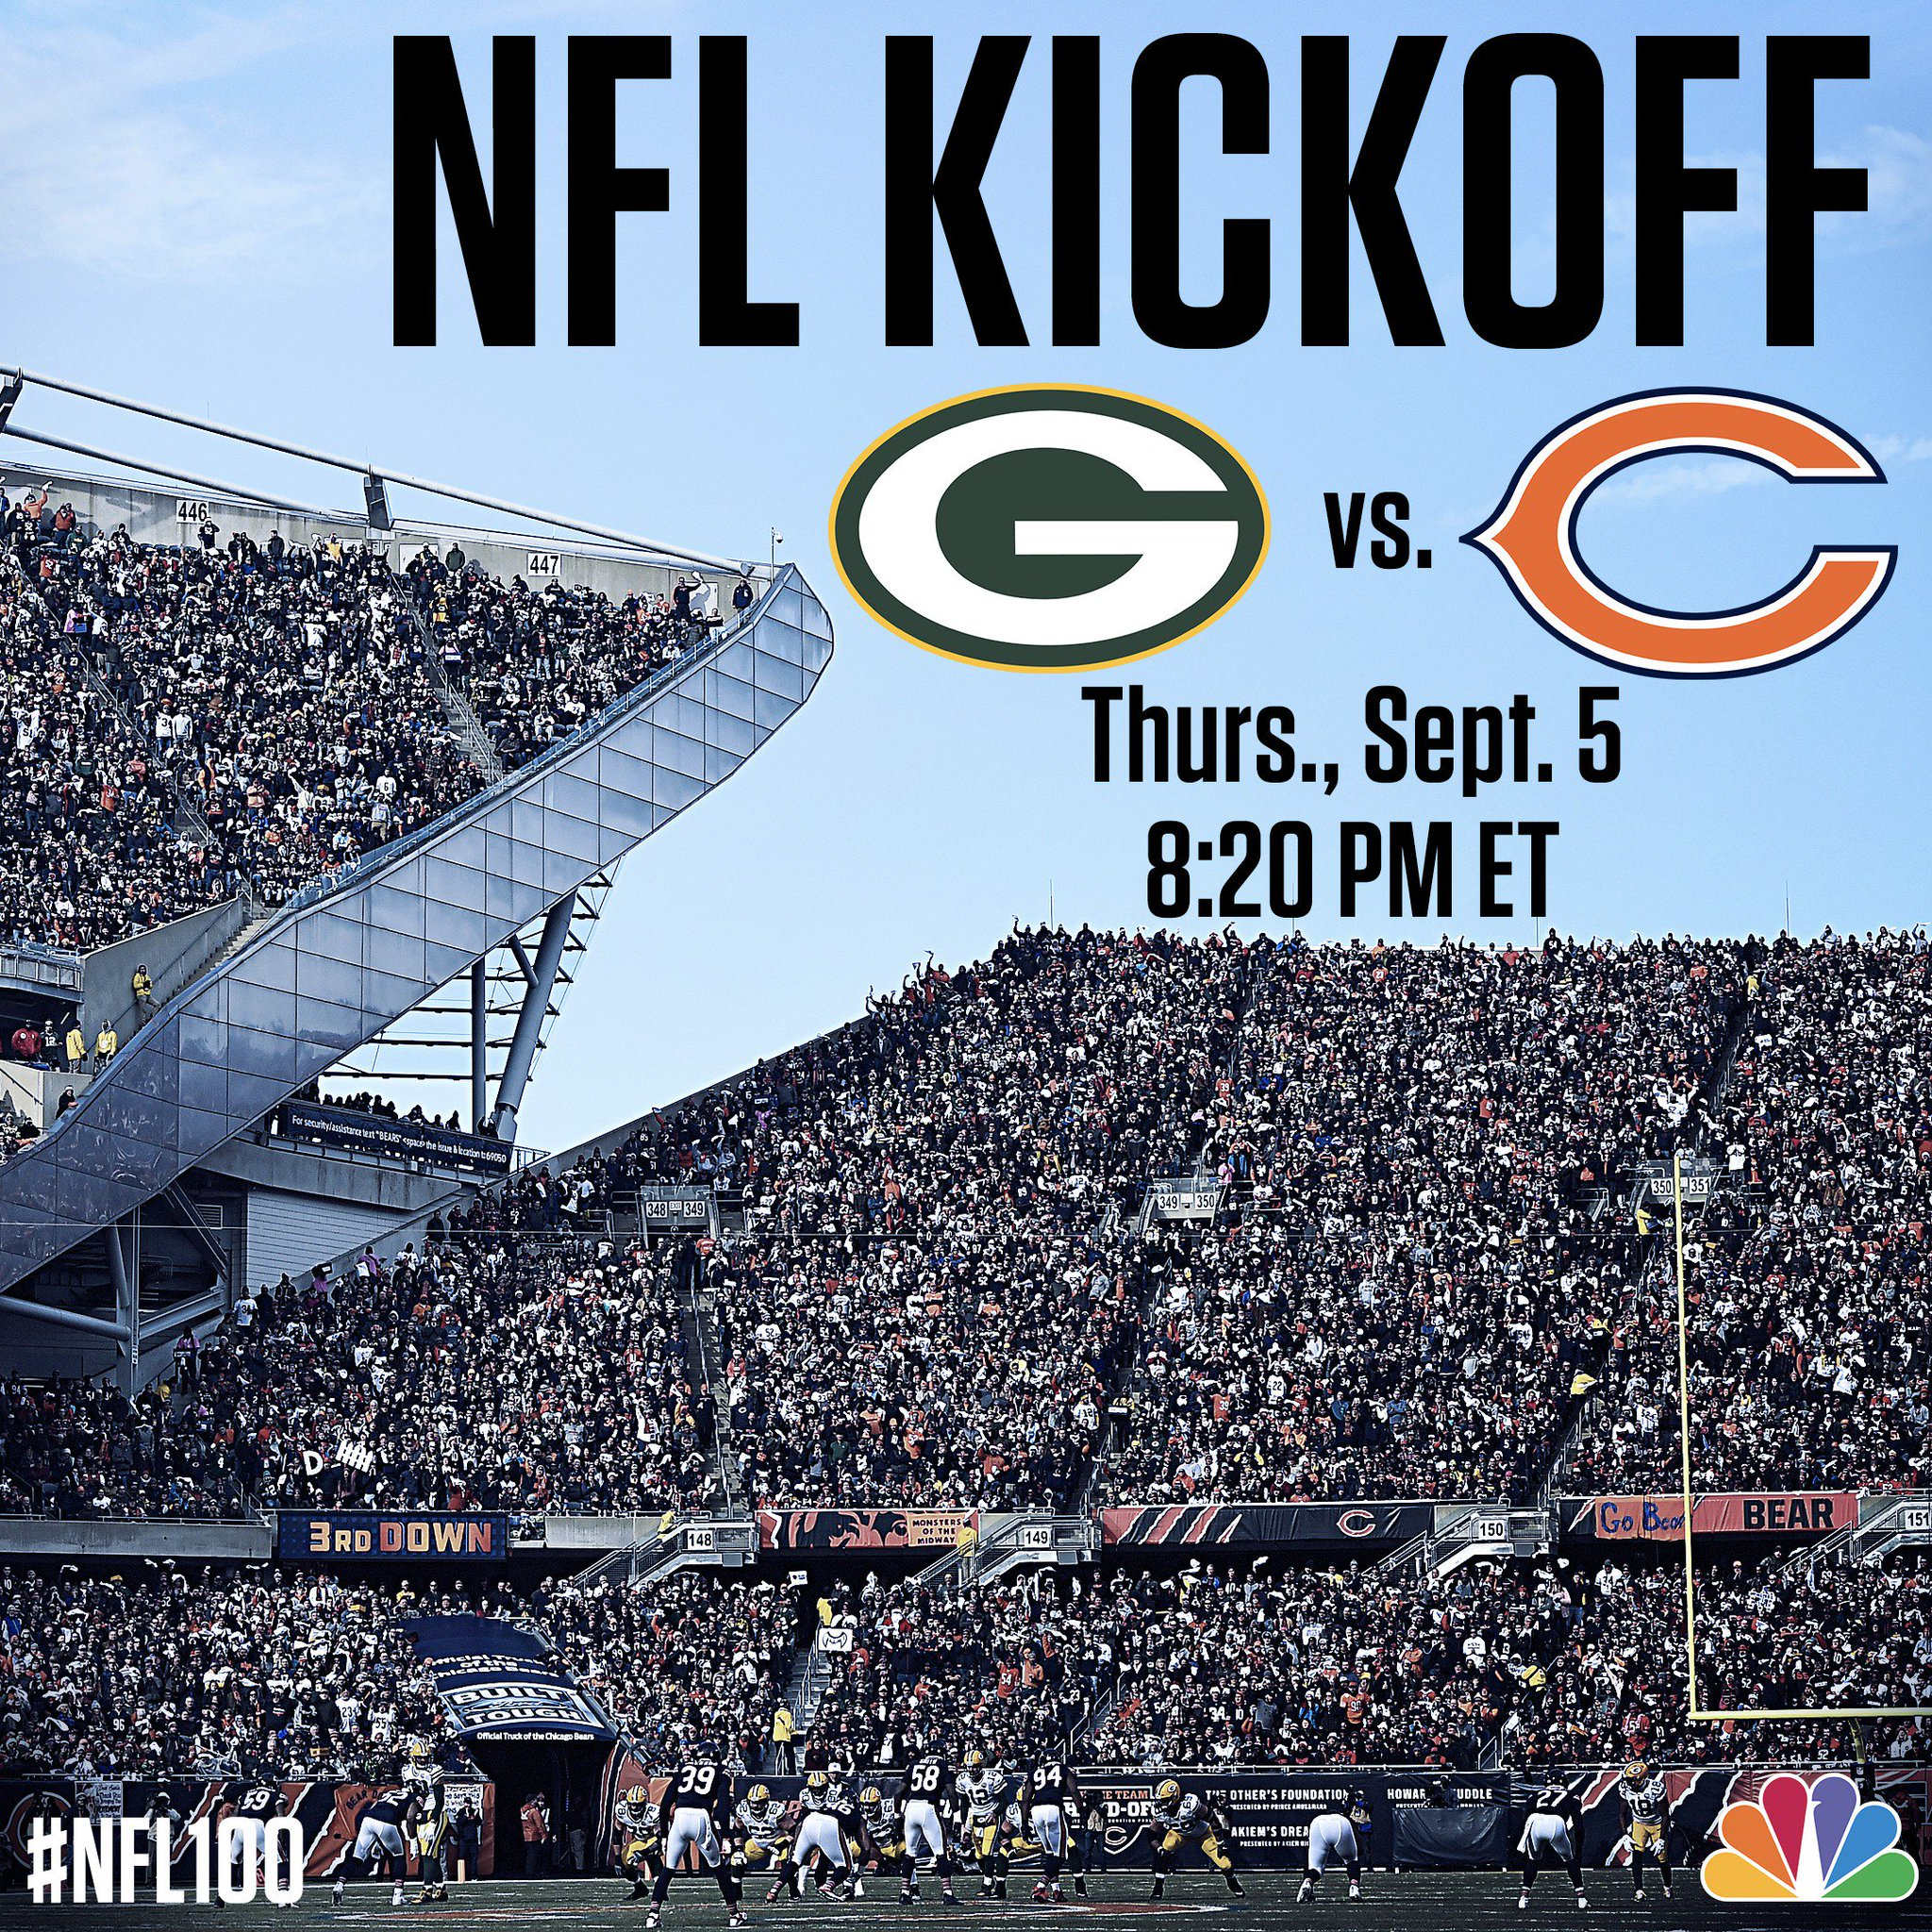 Two of the NFL's oldest and proudest franchises will open the league's 100th season on NBC. https://t.co/dXWRmWmGUw https://t.co/Z7r6AFl8Cj